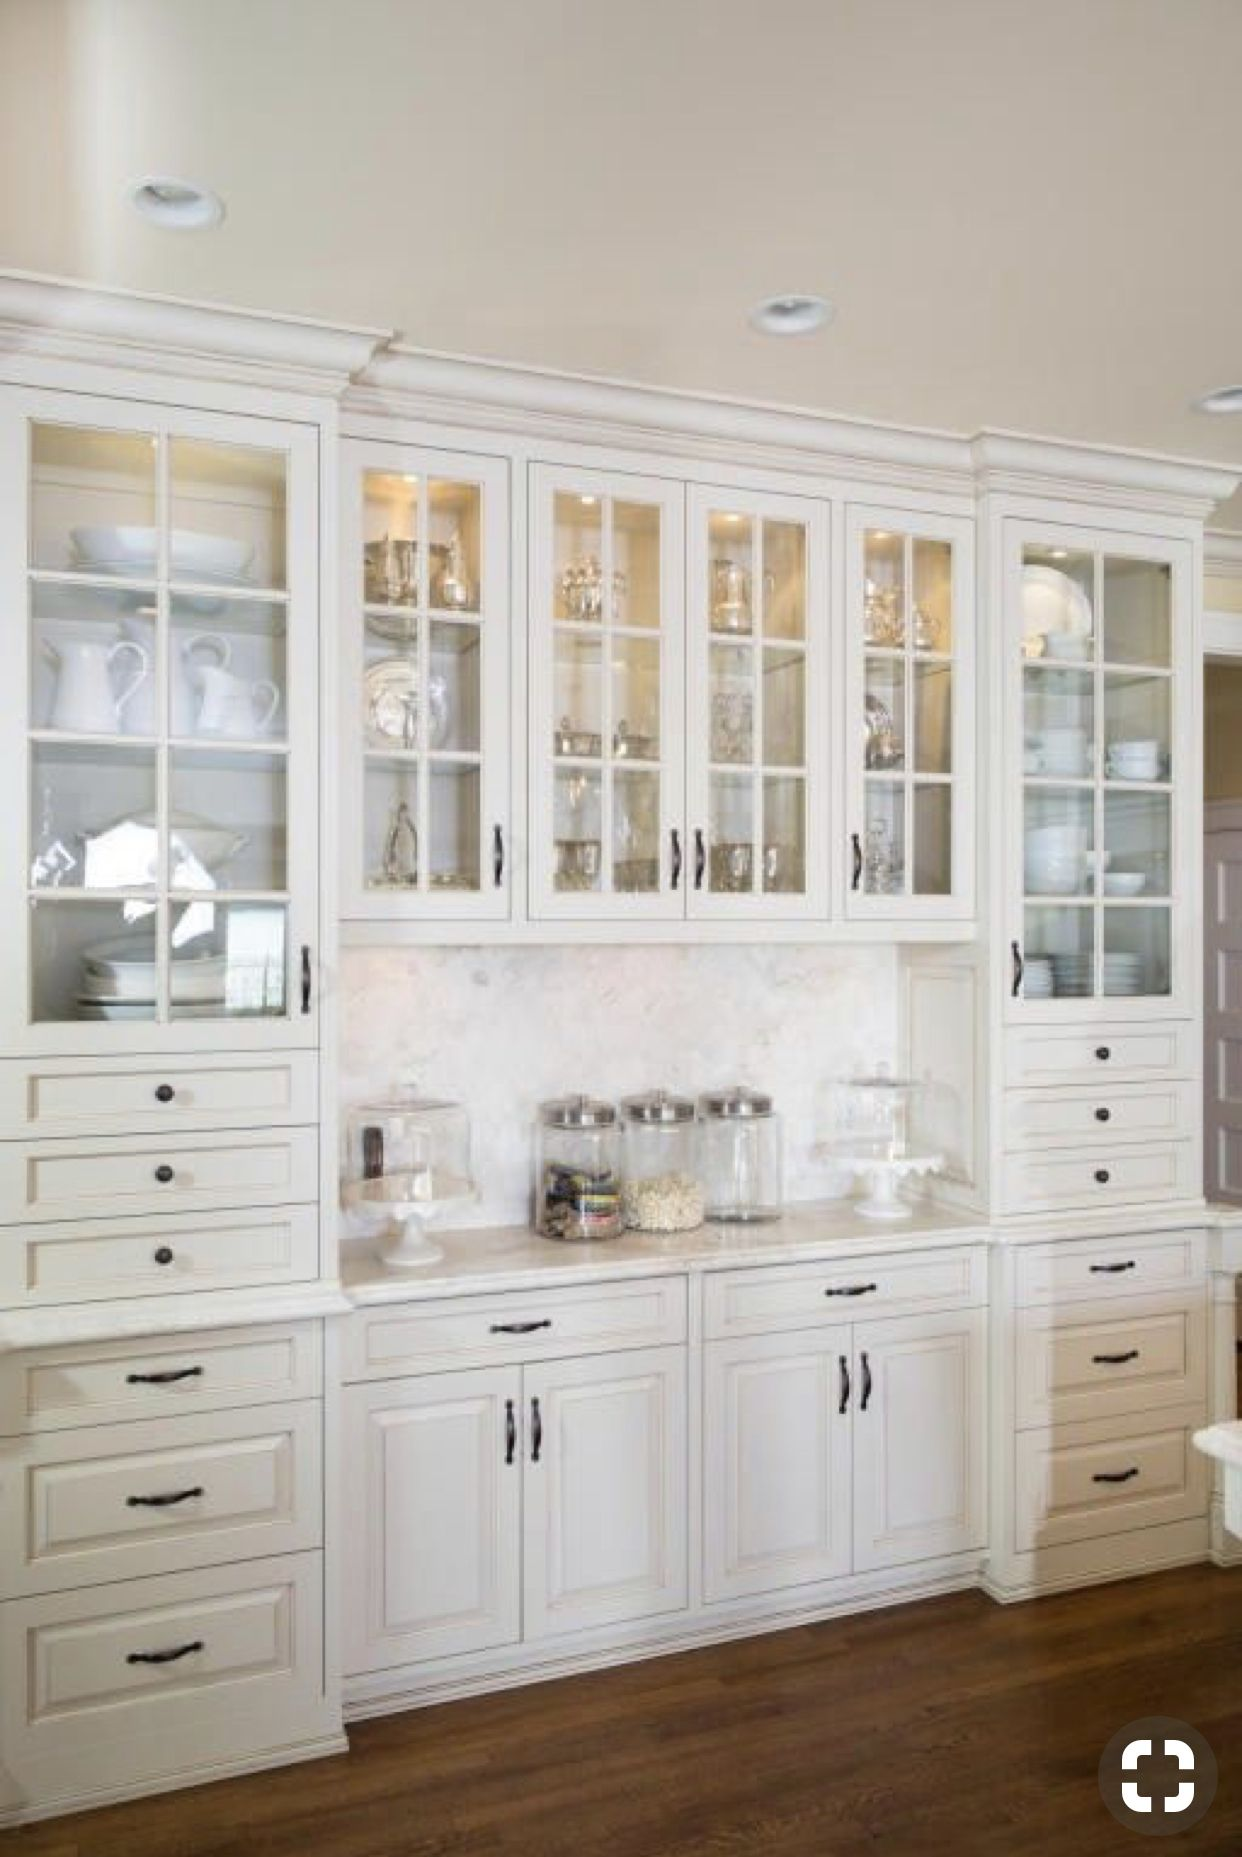 Pin By Joan Flake On House With Images Dining Room Cabinet Dining Room Storage Dining Room Walls